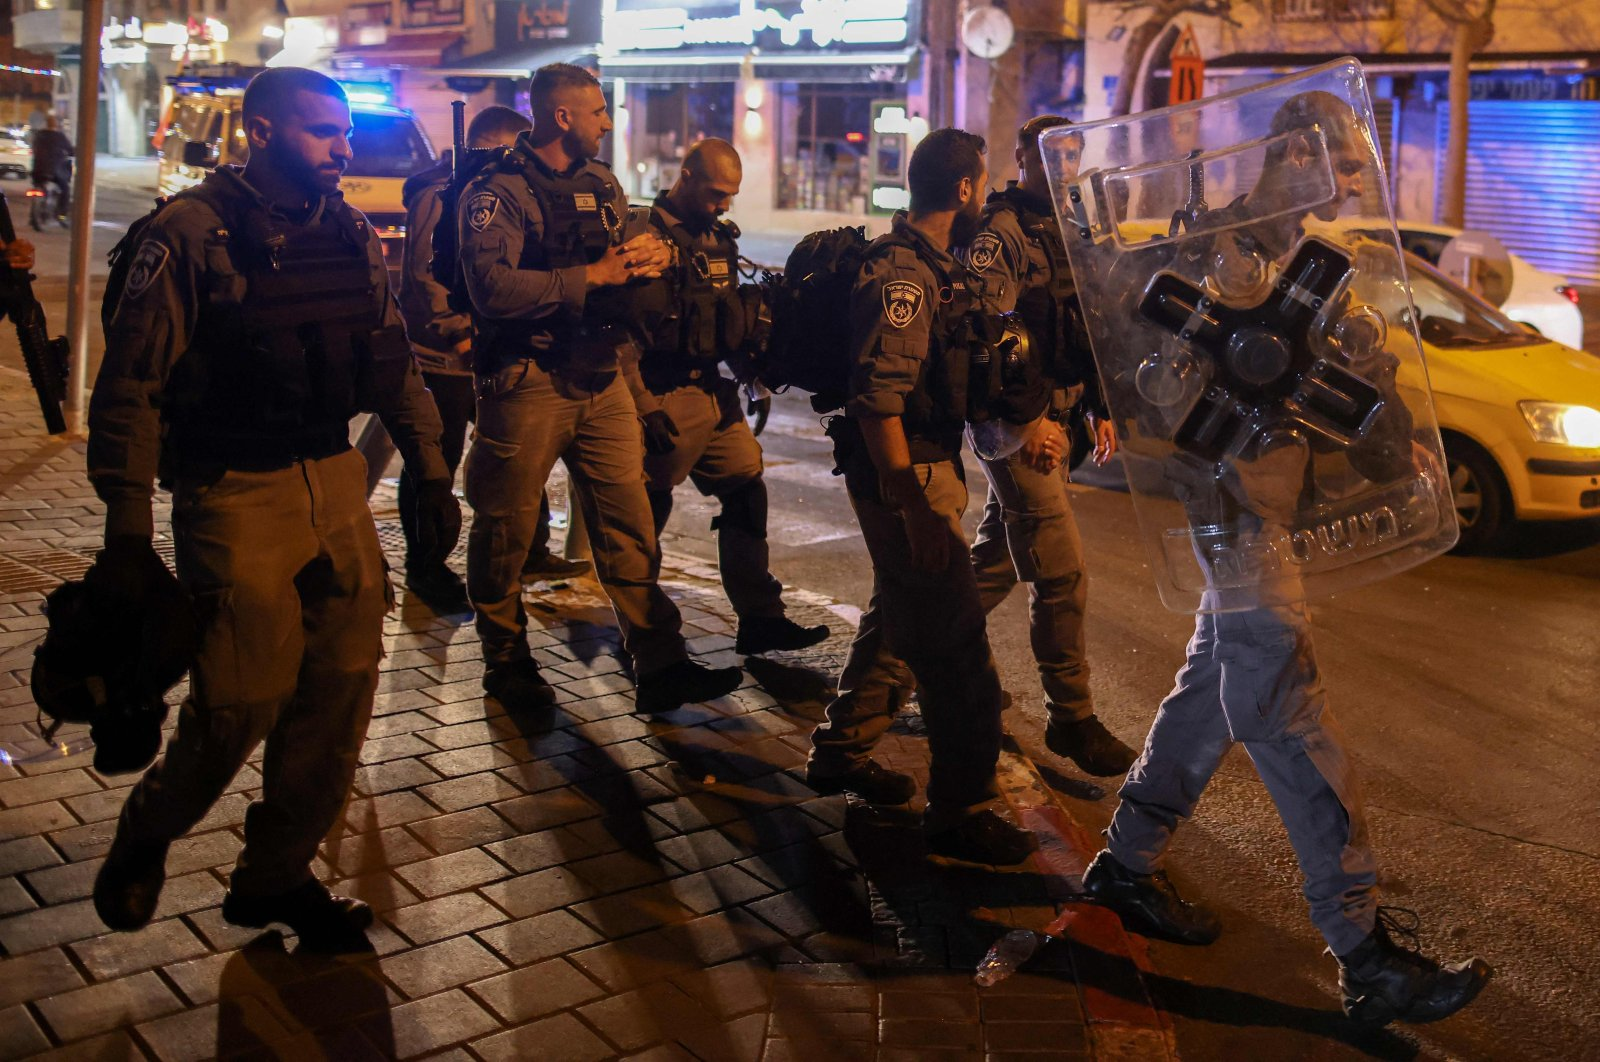 Israeli security forces deployed in the streets in Jaffa, near Tel Aviv, Israel, April 18, 2021. (AFP Photo)